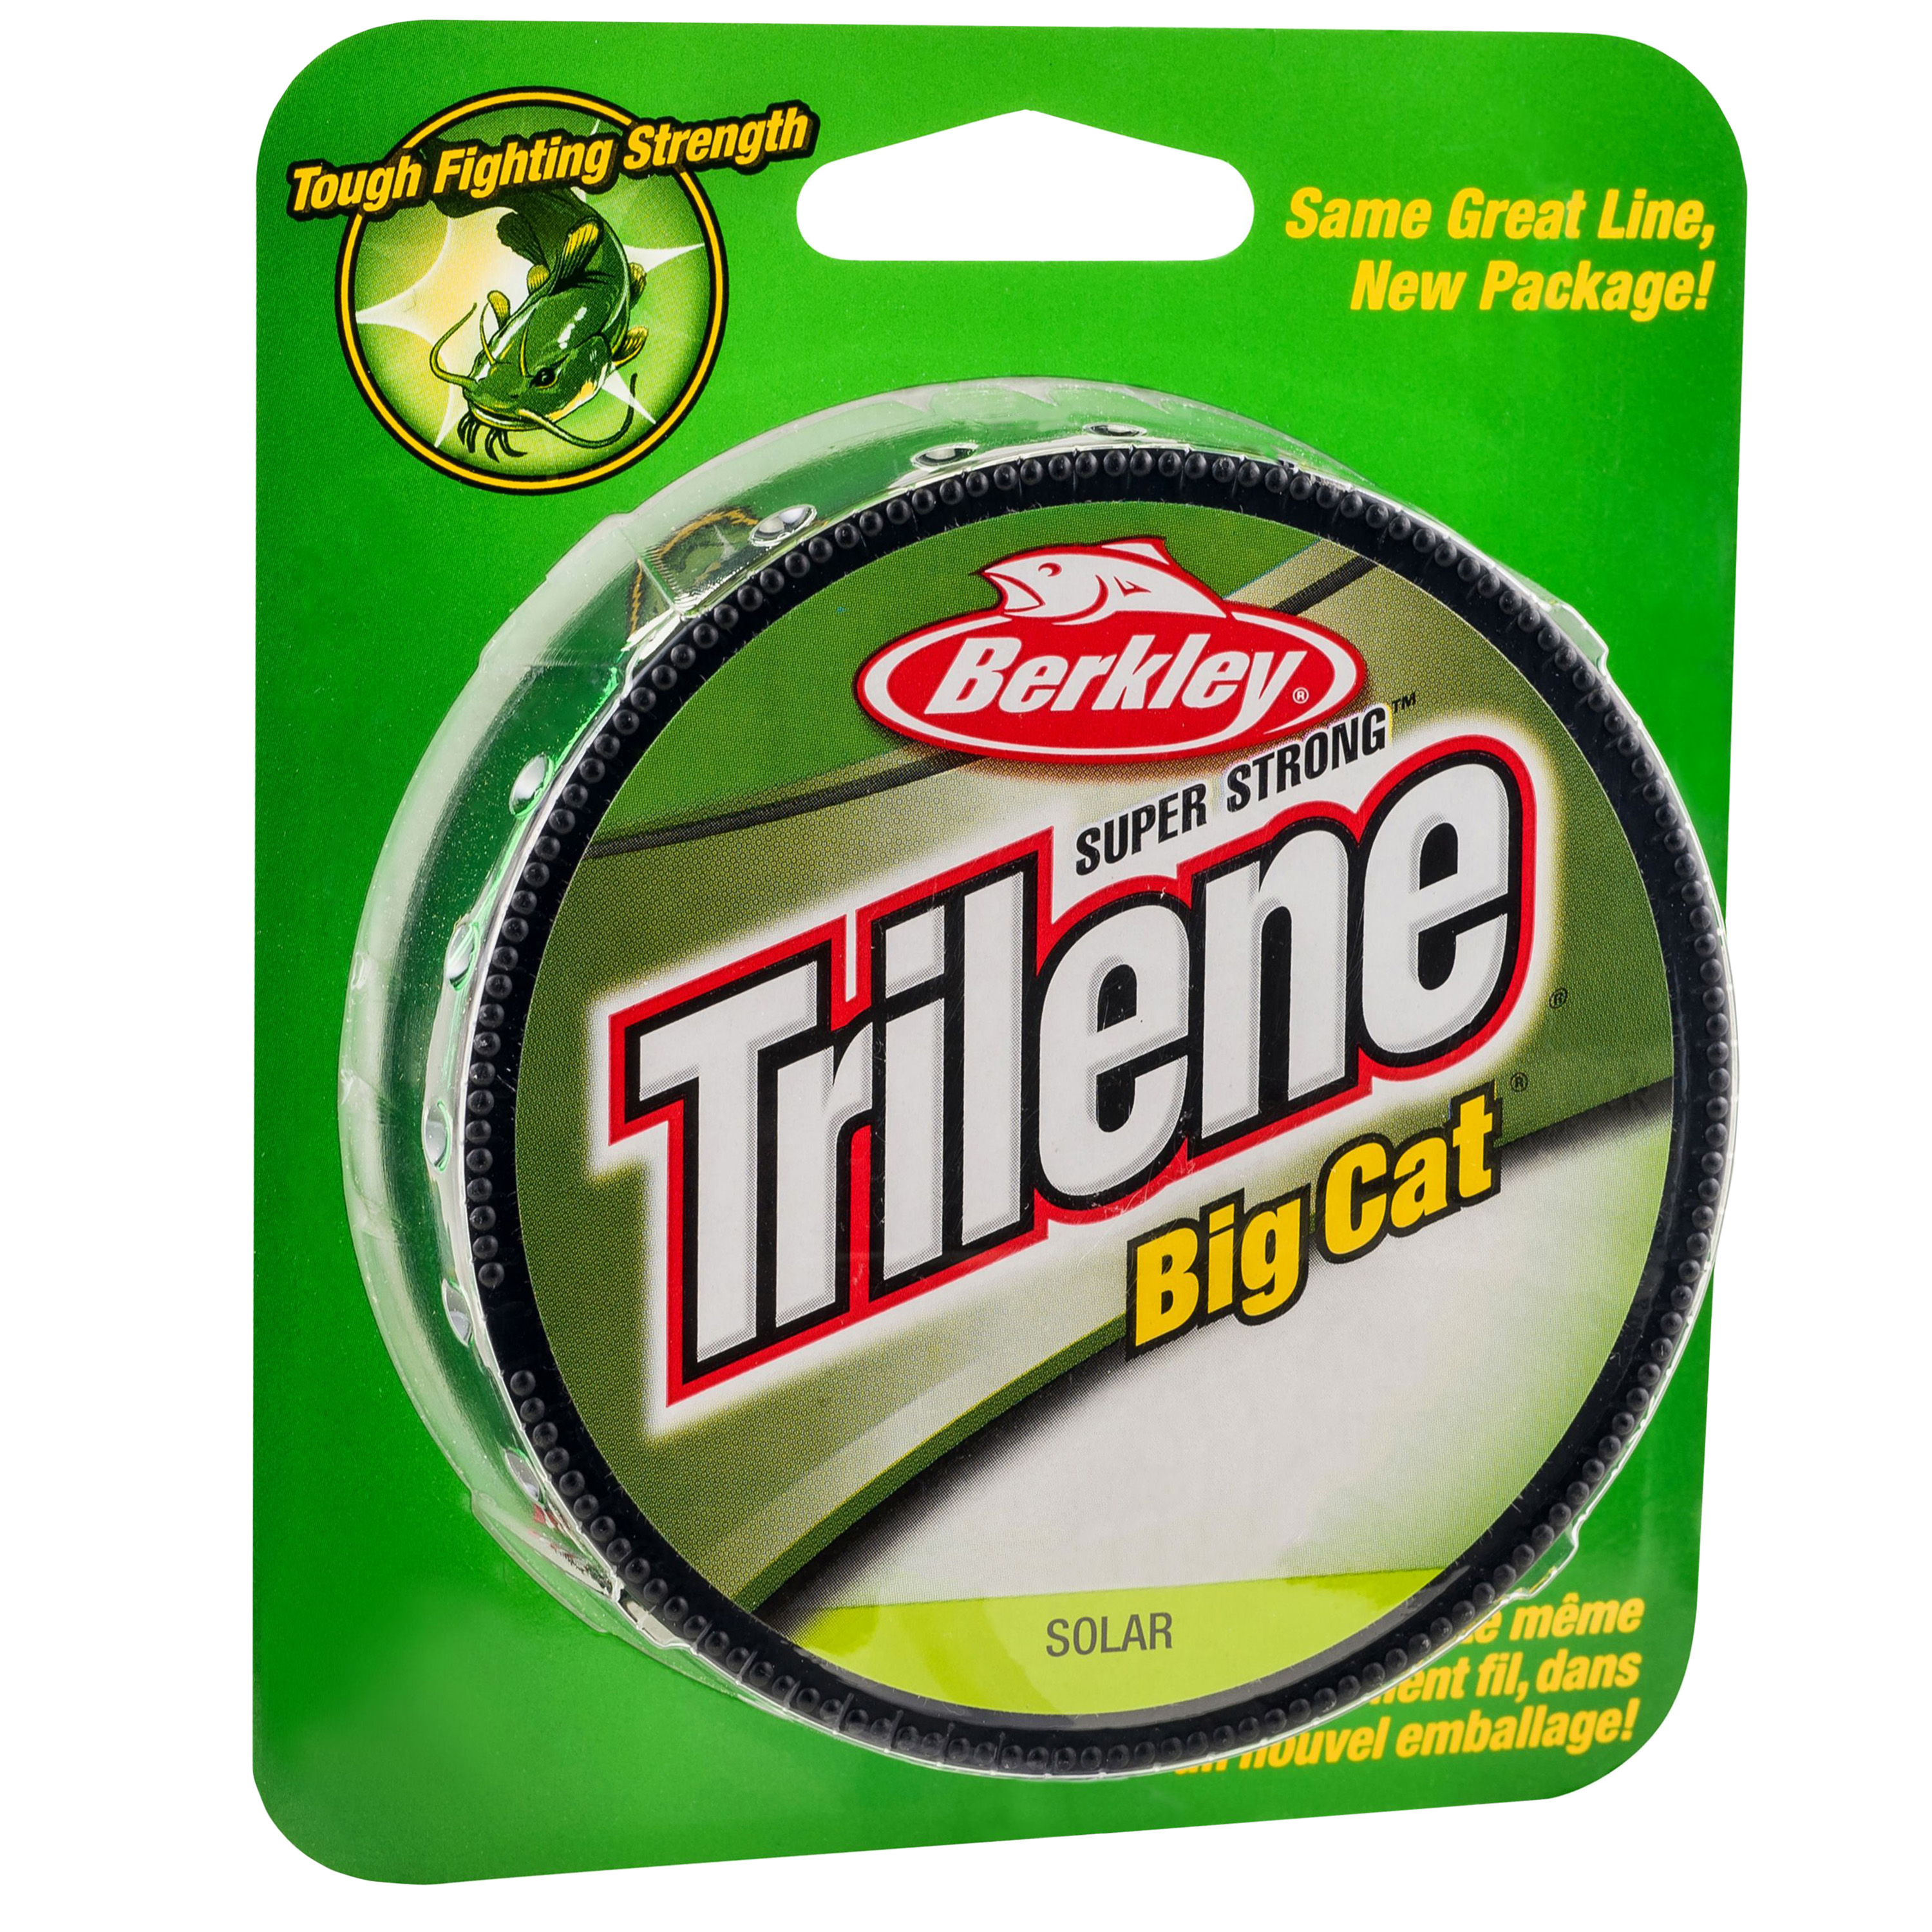 "Berkley Trilene Big Cat Monofilament Line Spool 220 Yards, 0.022"" Diameter, 30 lbs Breaking Strength, Solar"